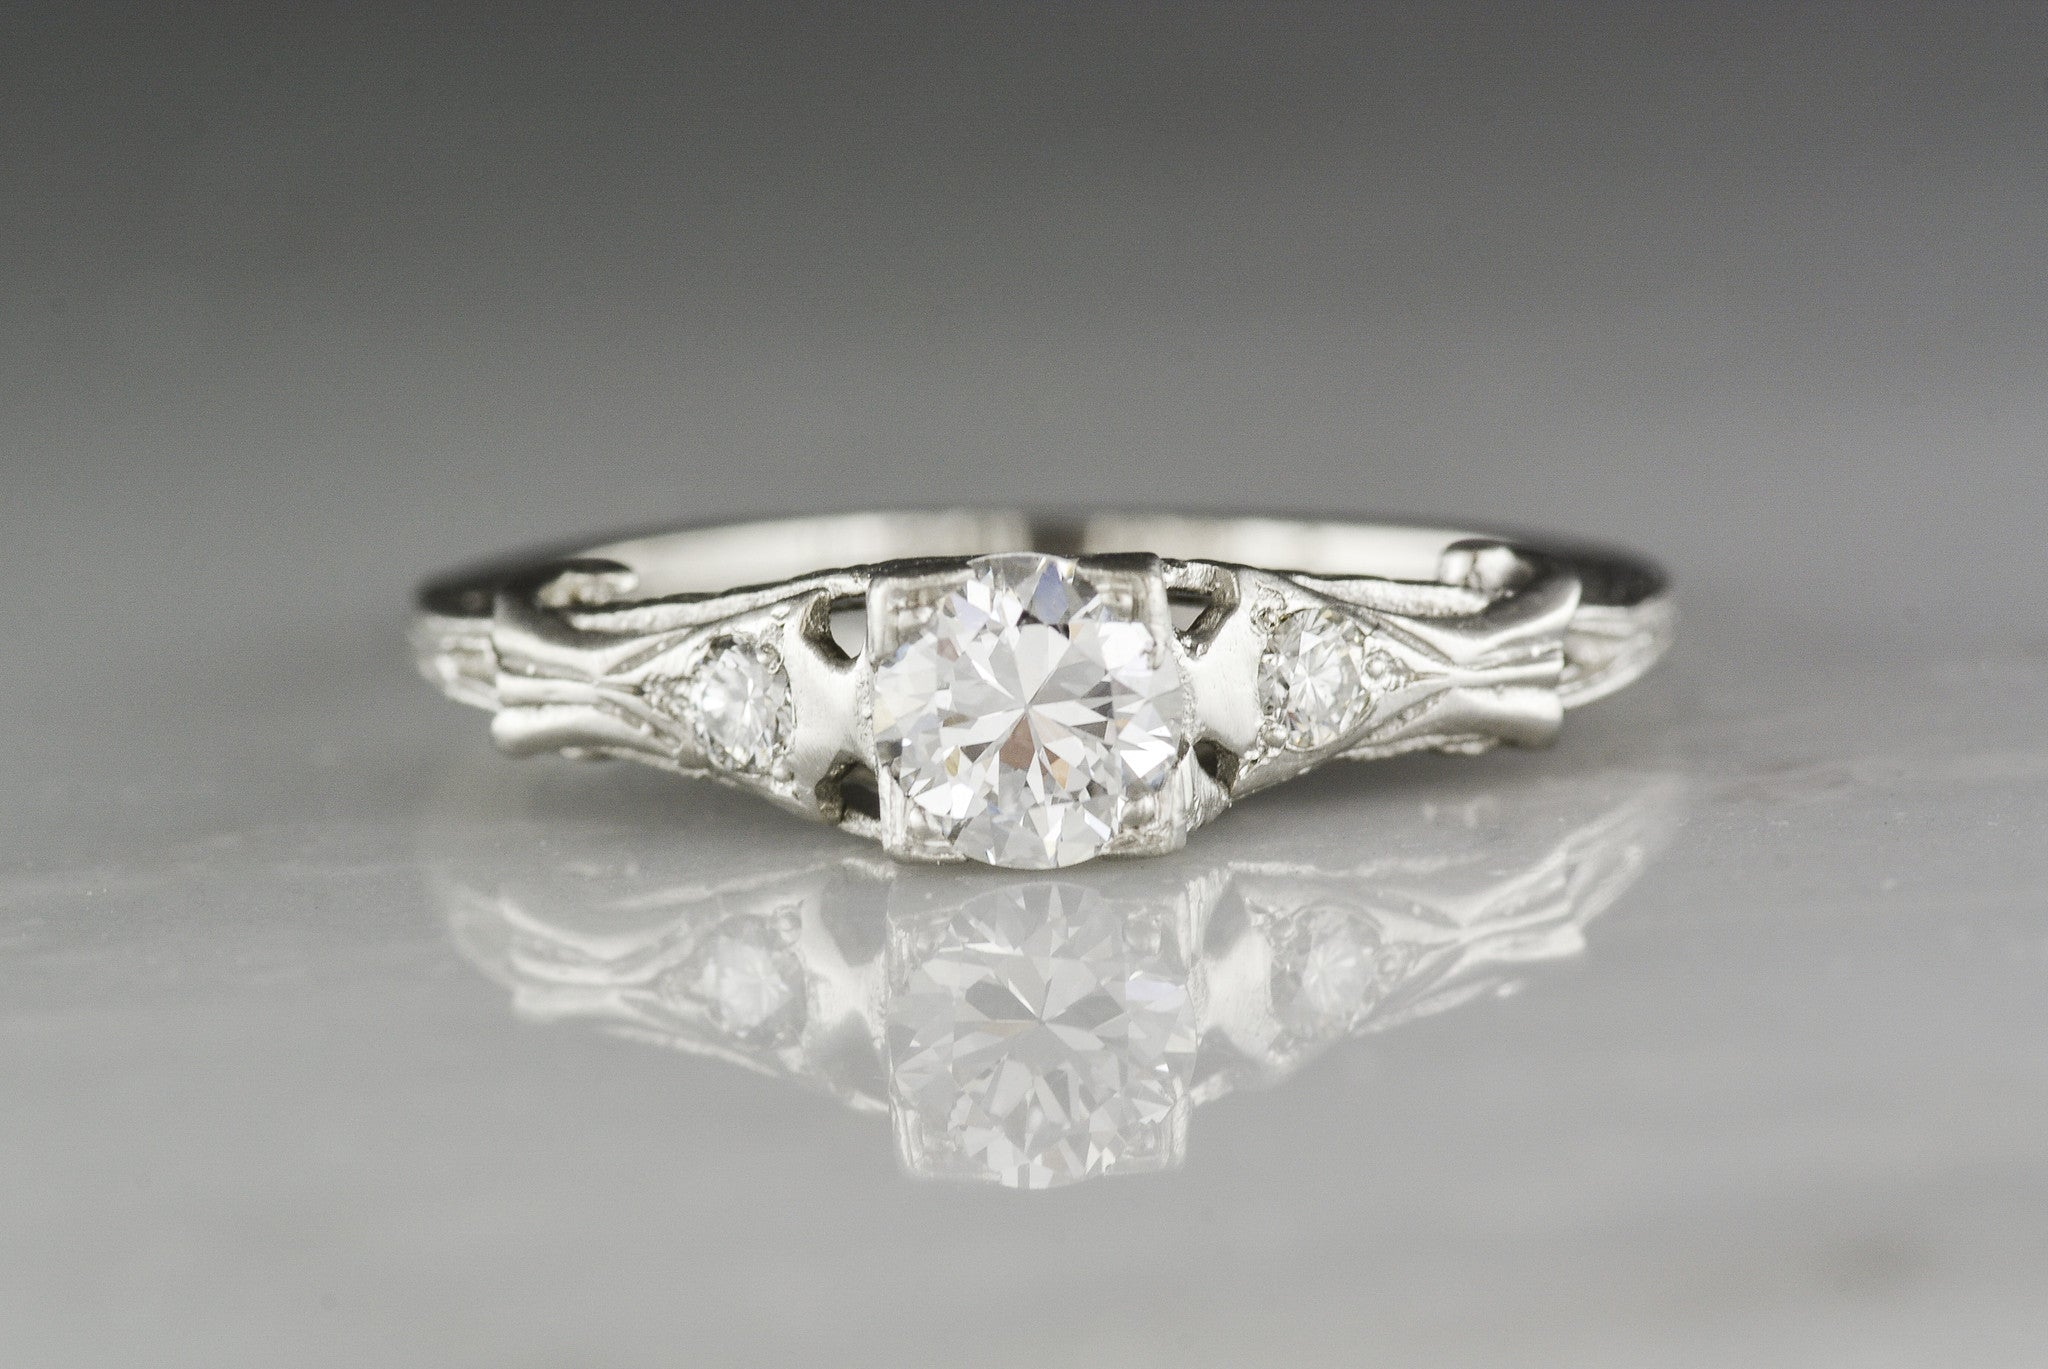 deco vintage sweet diamonds two et toi stone art ring moi diamond rings engagement fetheray products